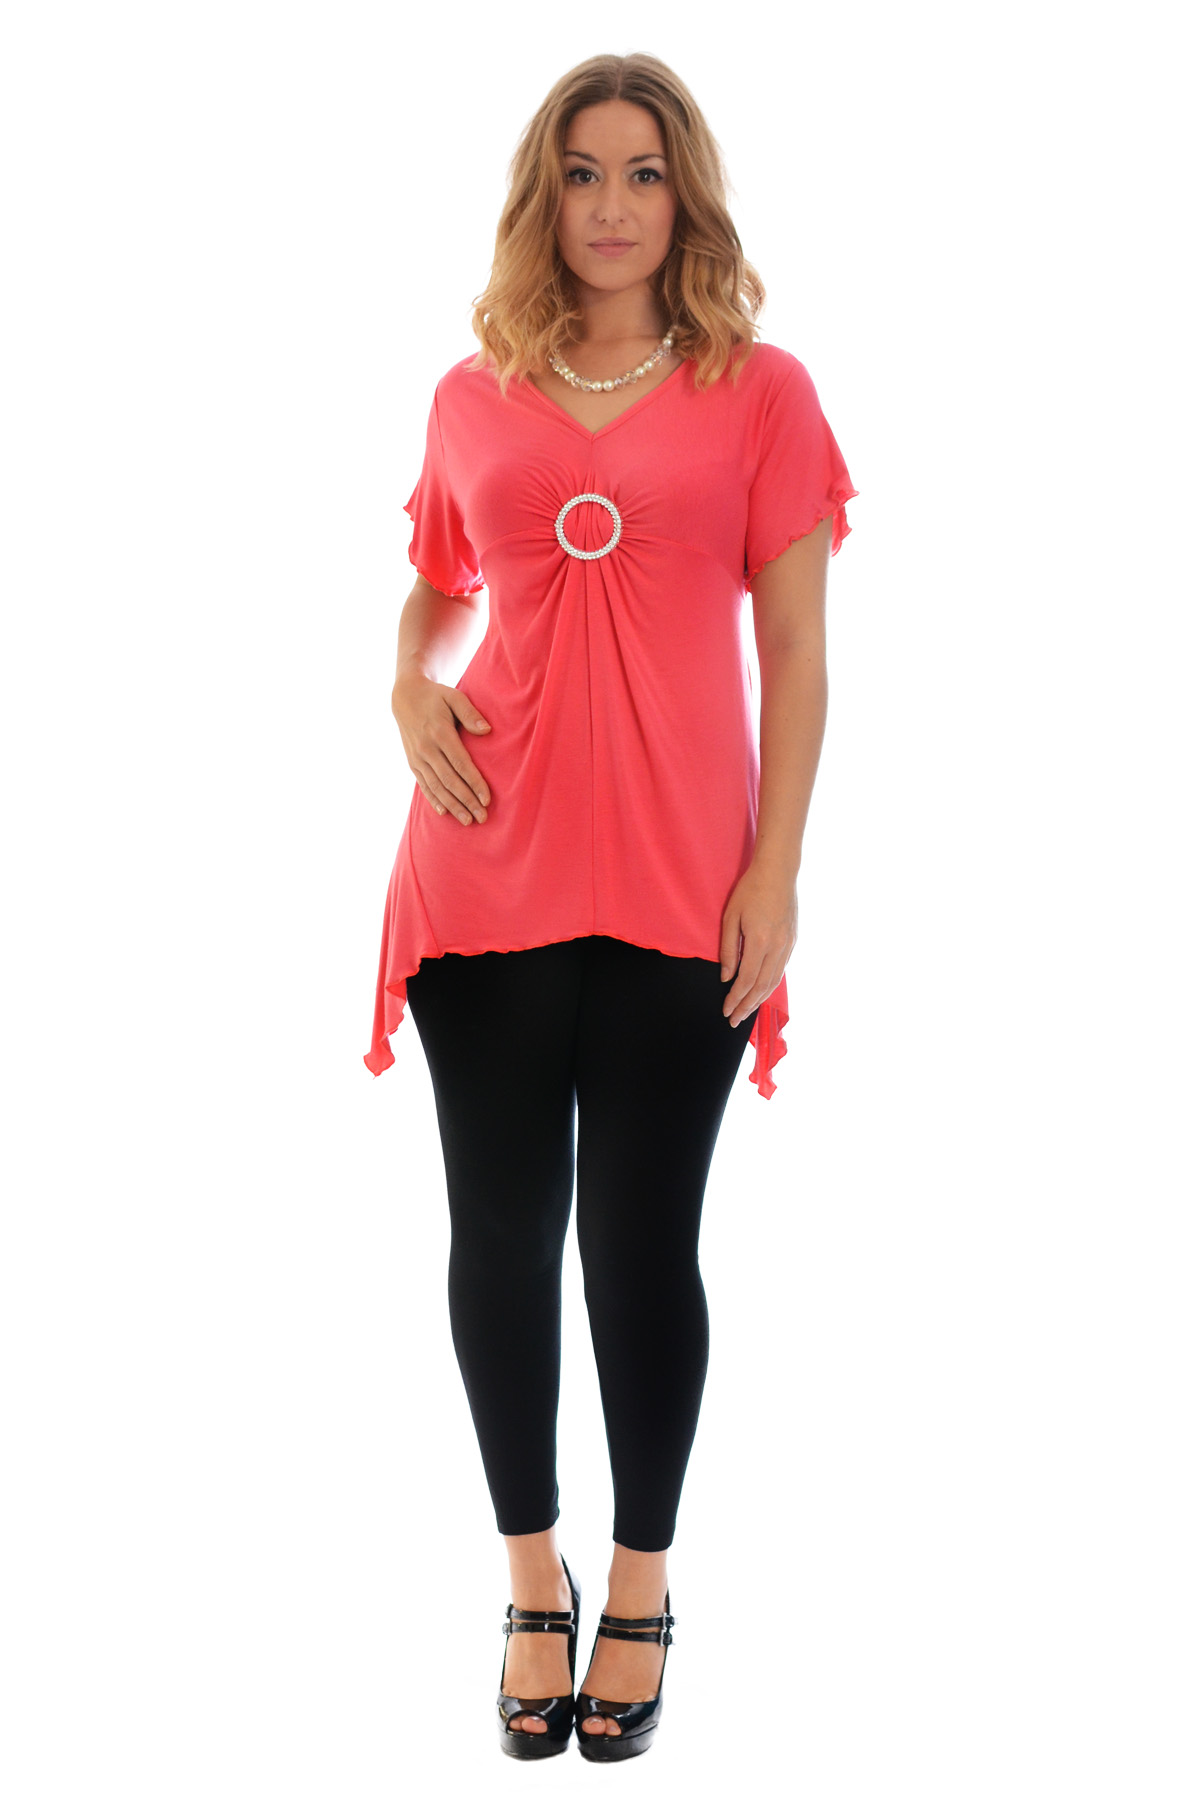 New-Womens-Plus-Size-Top-Ladies-T-Shirt-Buckle-Stud-A-Line-Asymmetric-Nouvelle thumbnail 52